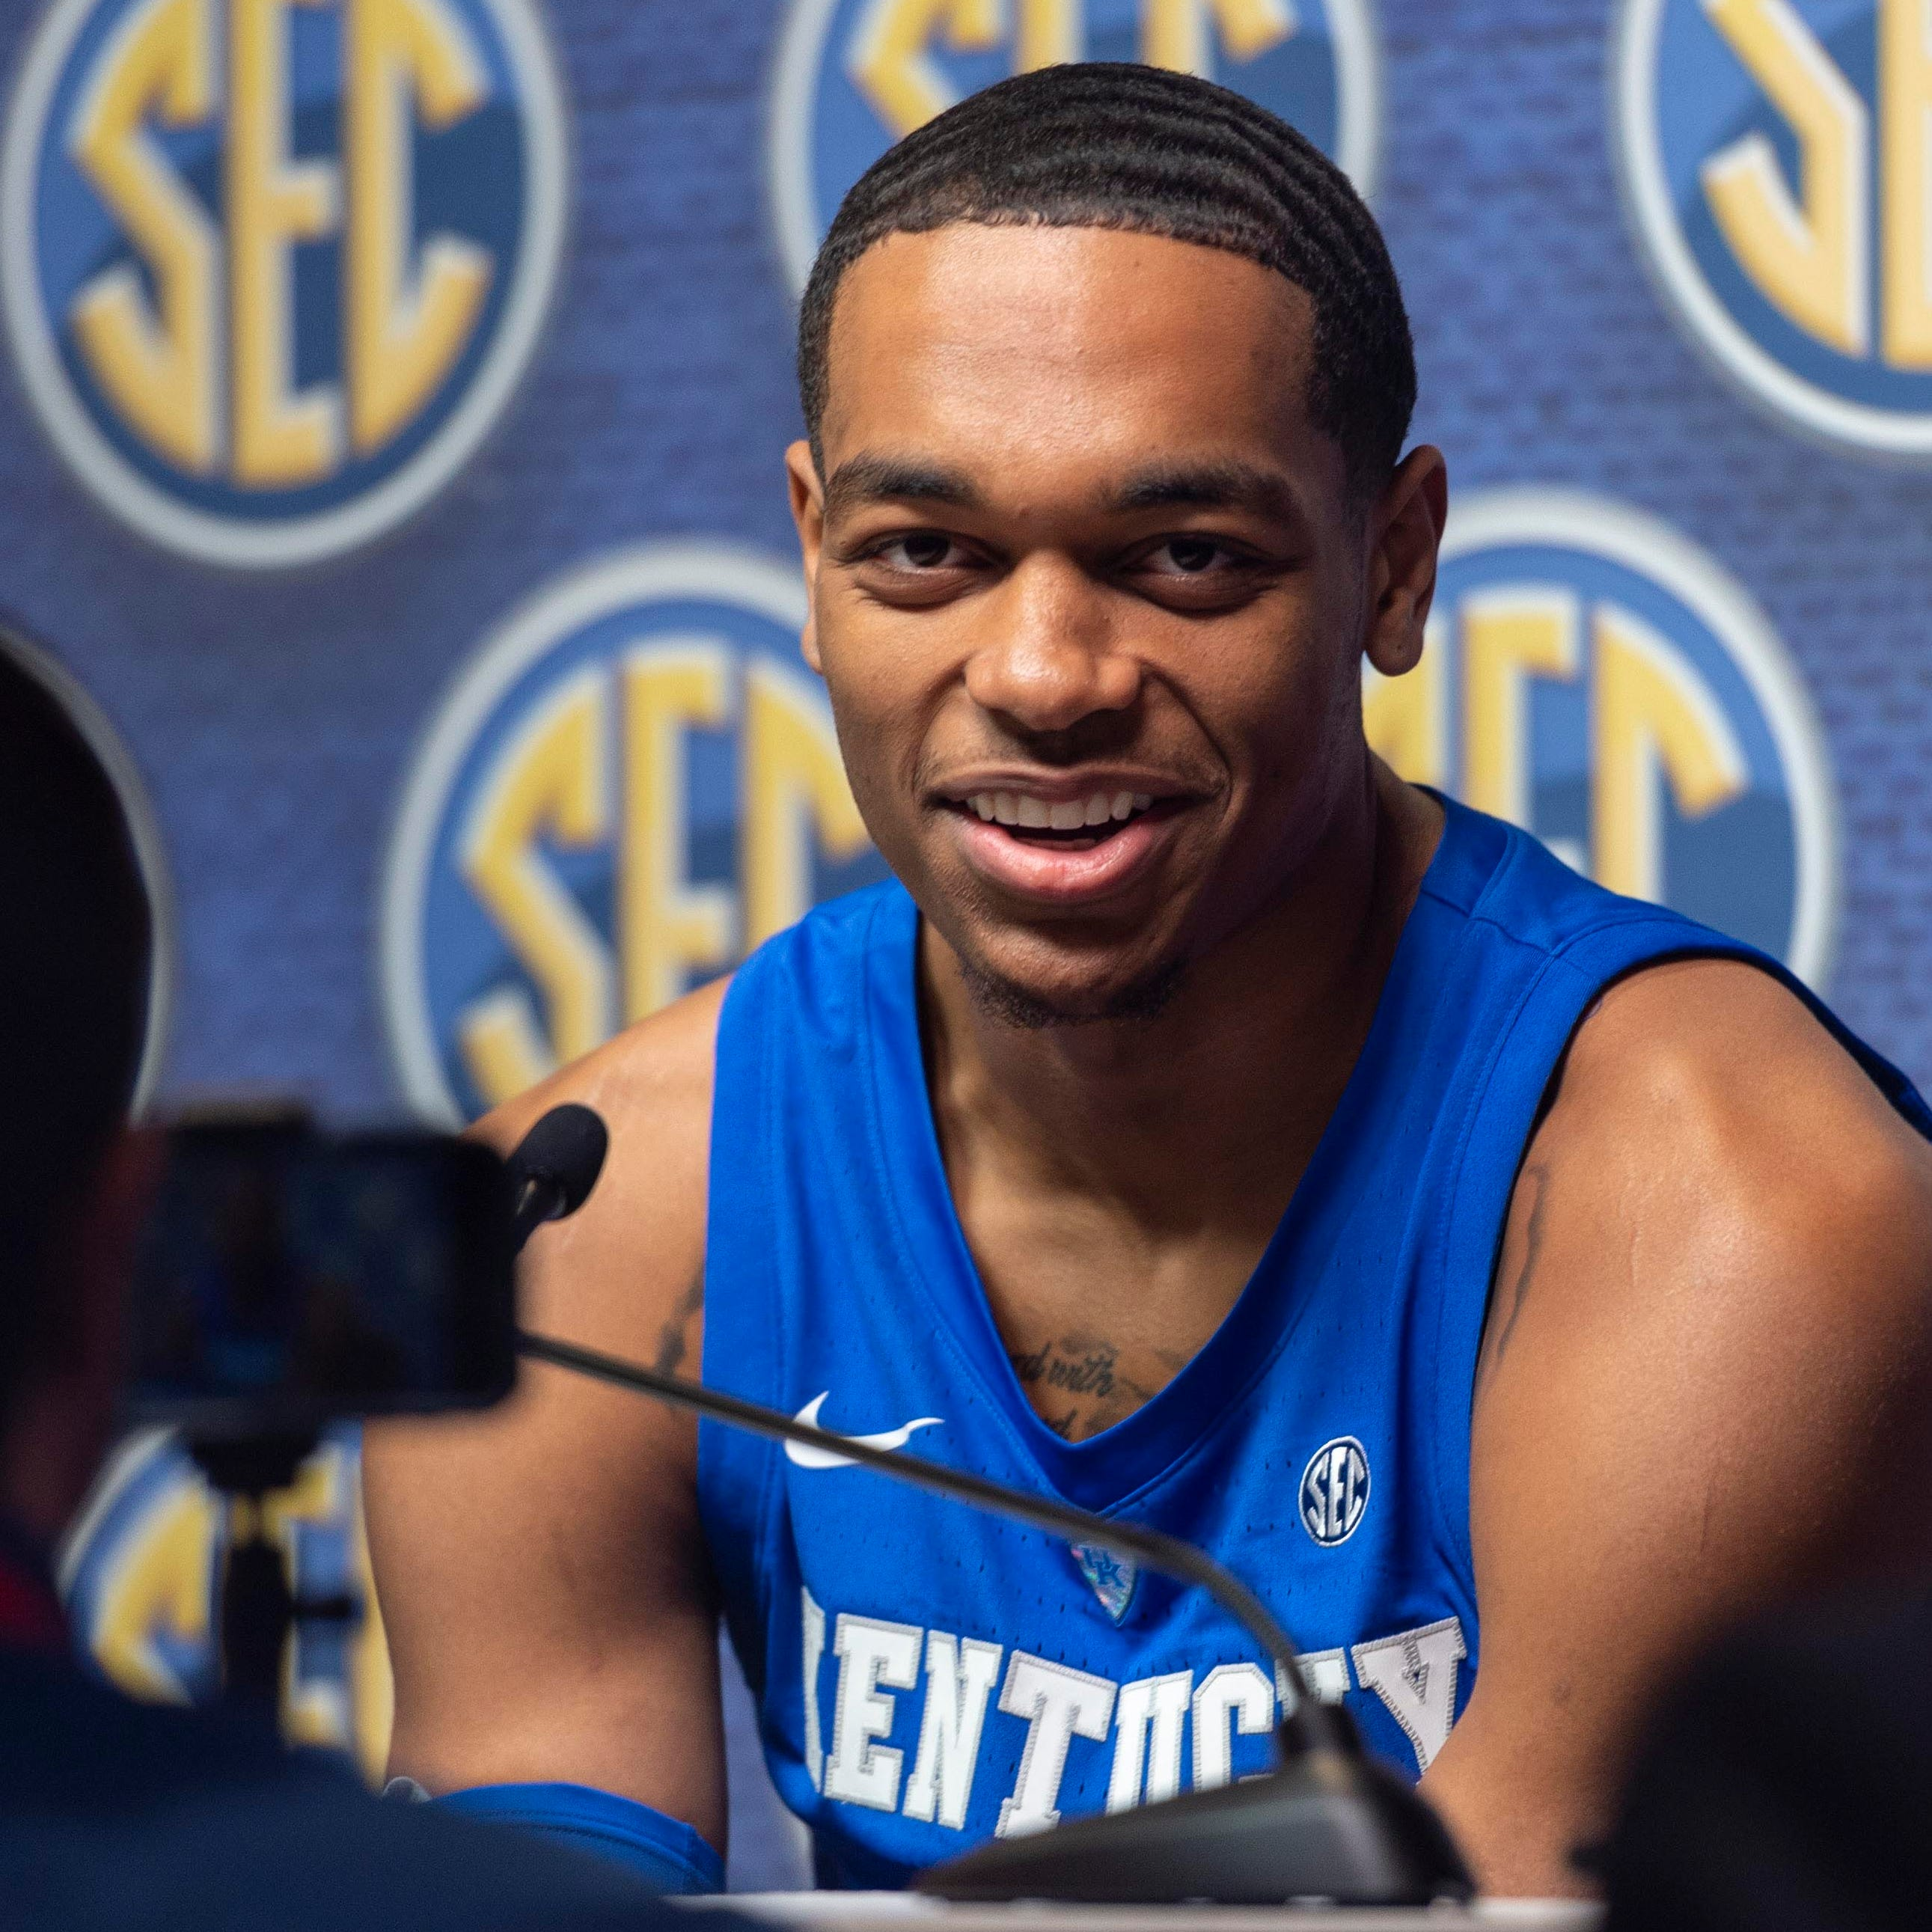 Will Kentucky basketball team's chemistry reflect well on the court?